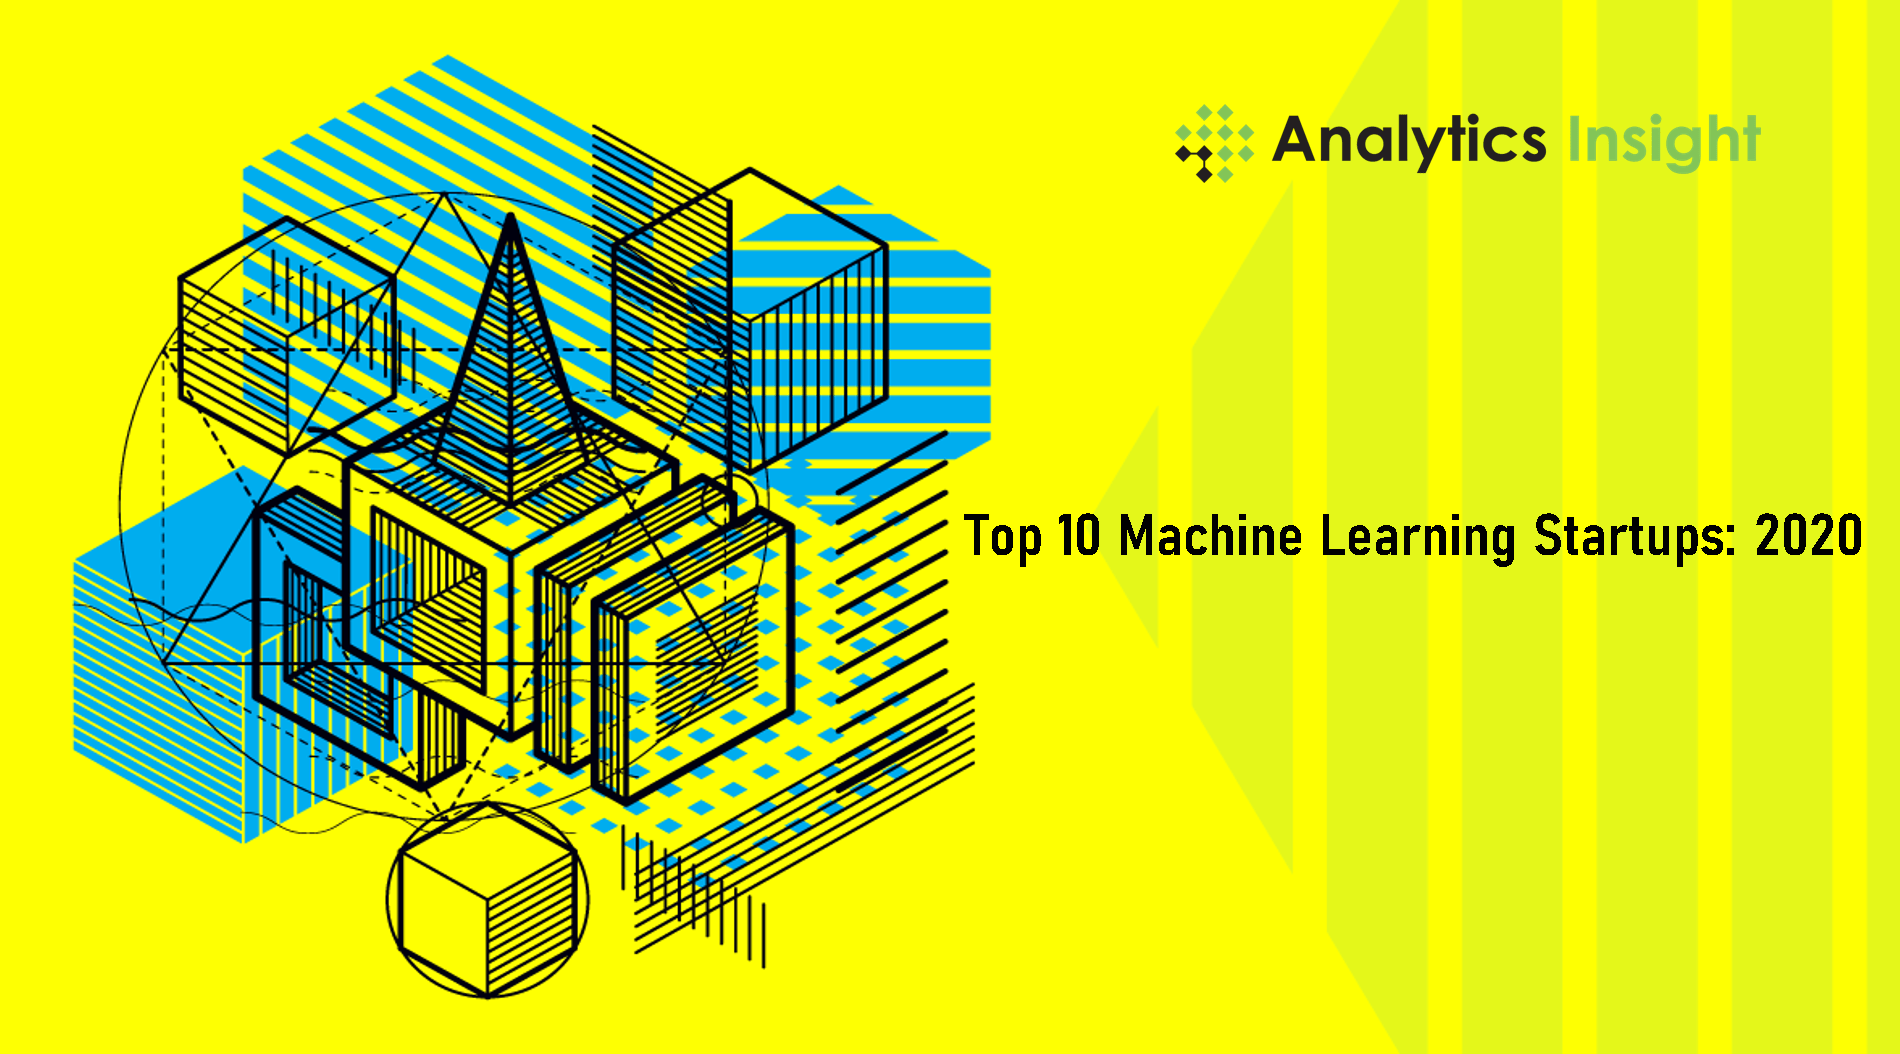 Top 10 Machine Learning Startups of 2020 – Analytics Insight